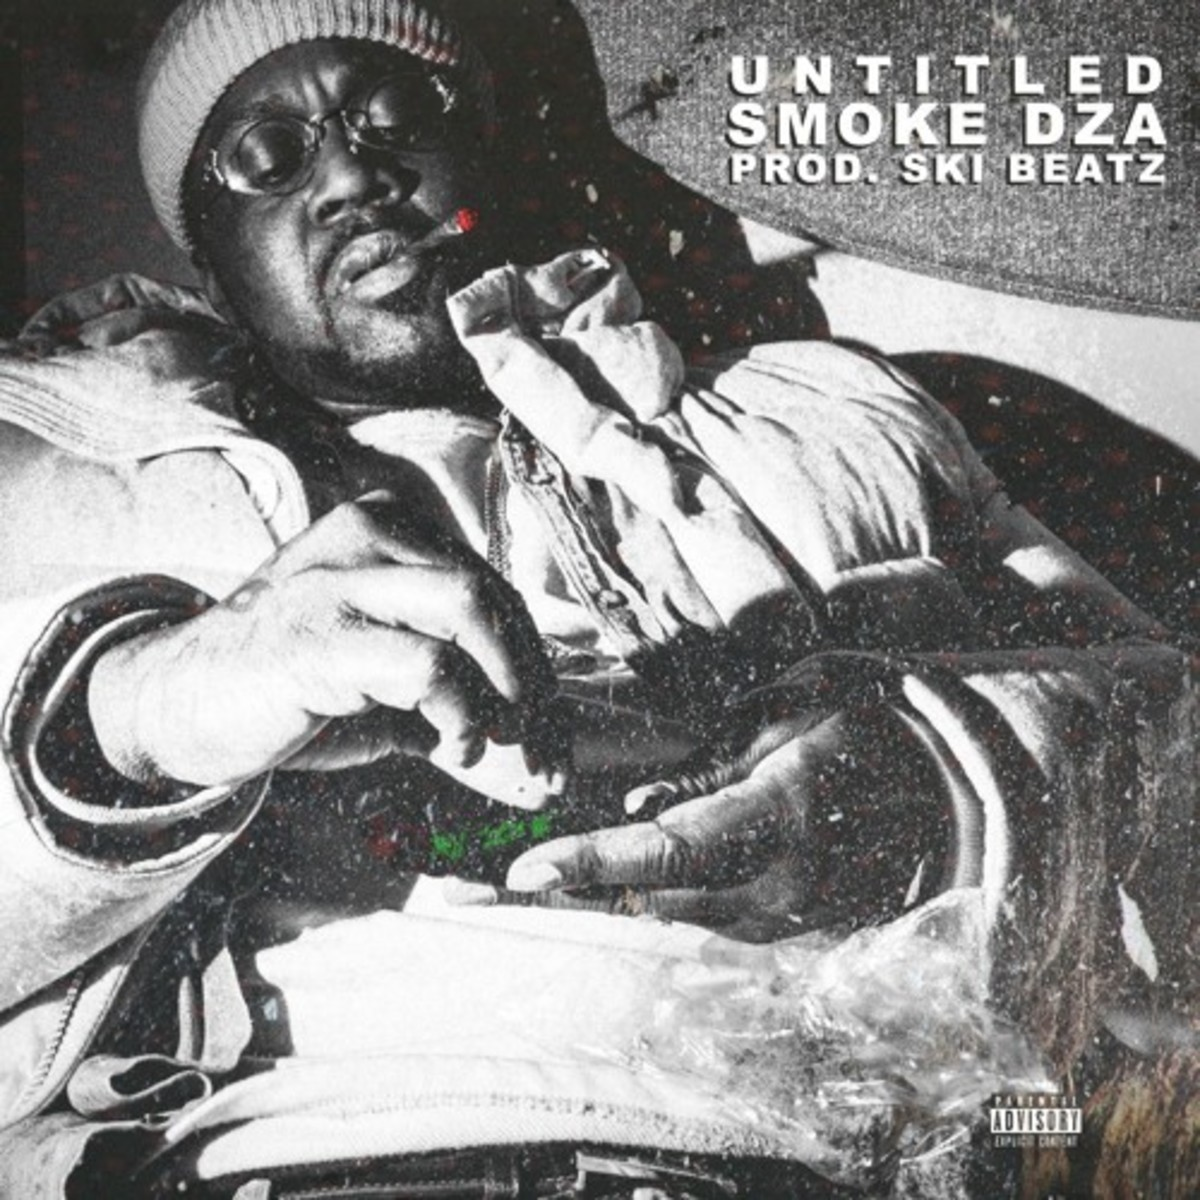 smoke-dza-untitled.jpg